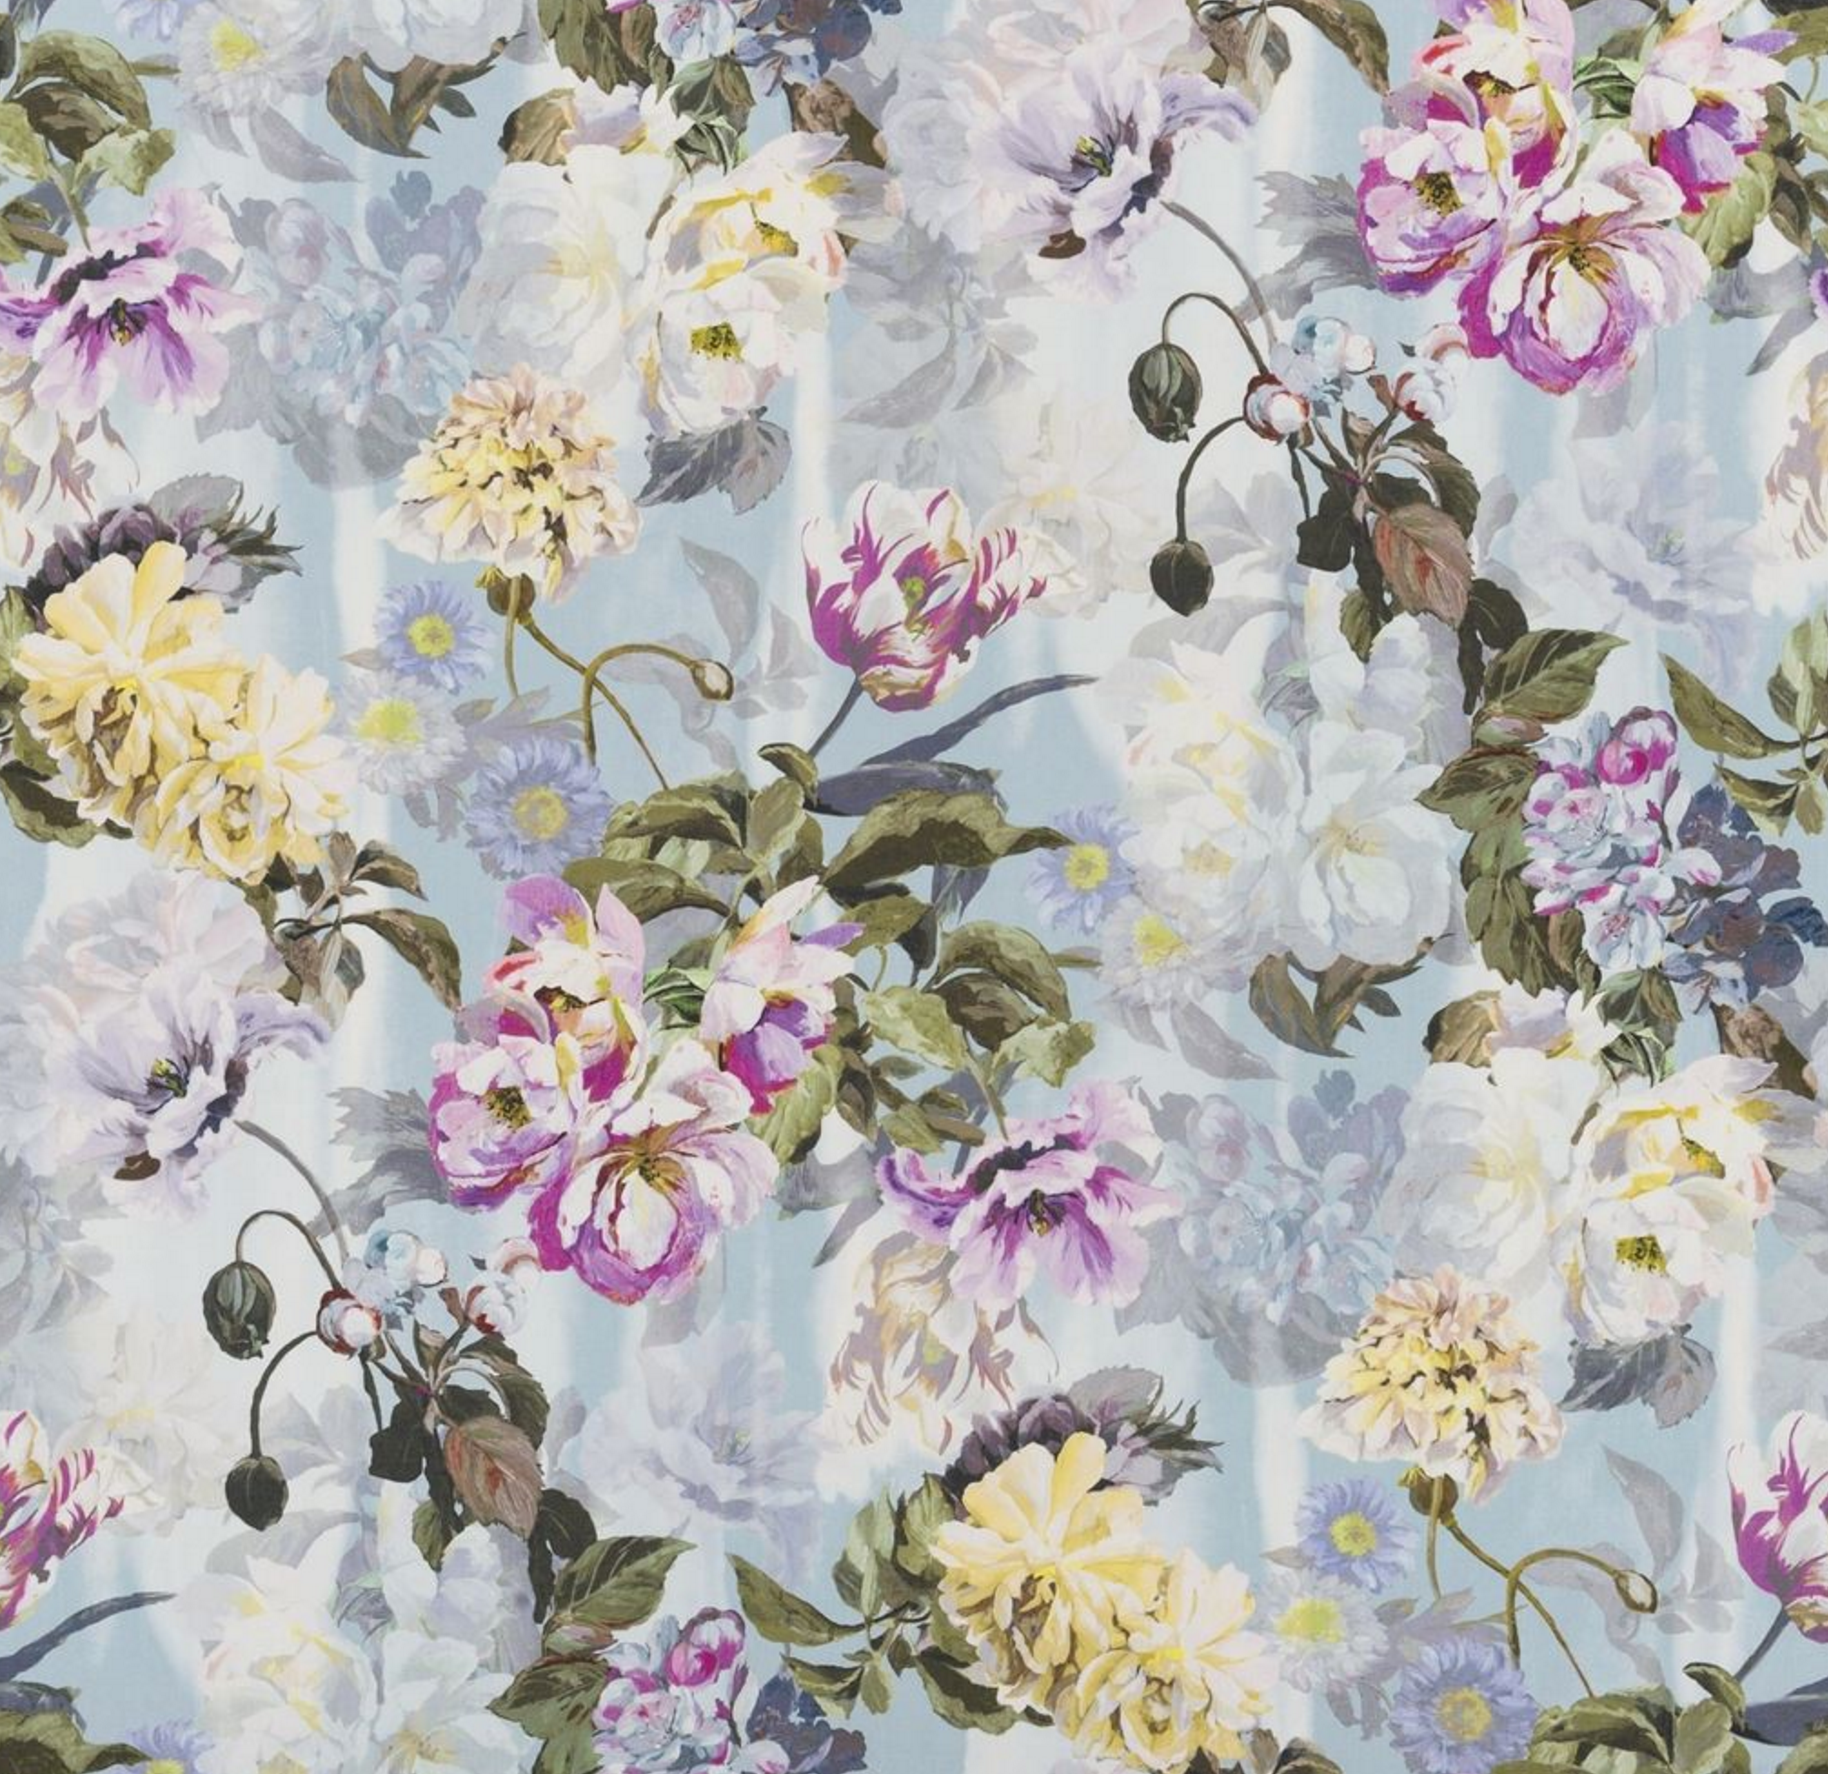 Delft Flower Fabric Swatch In